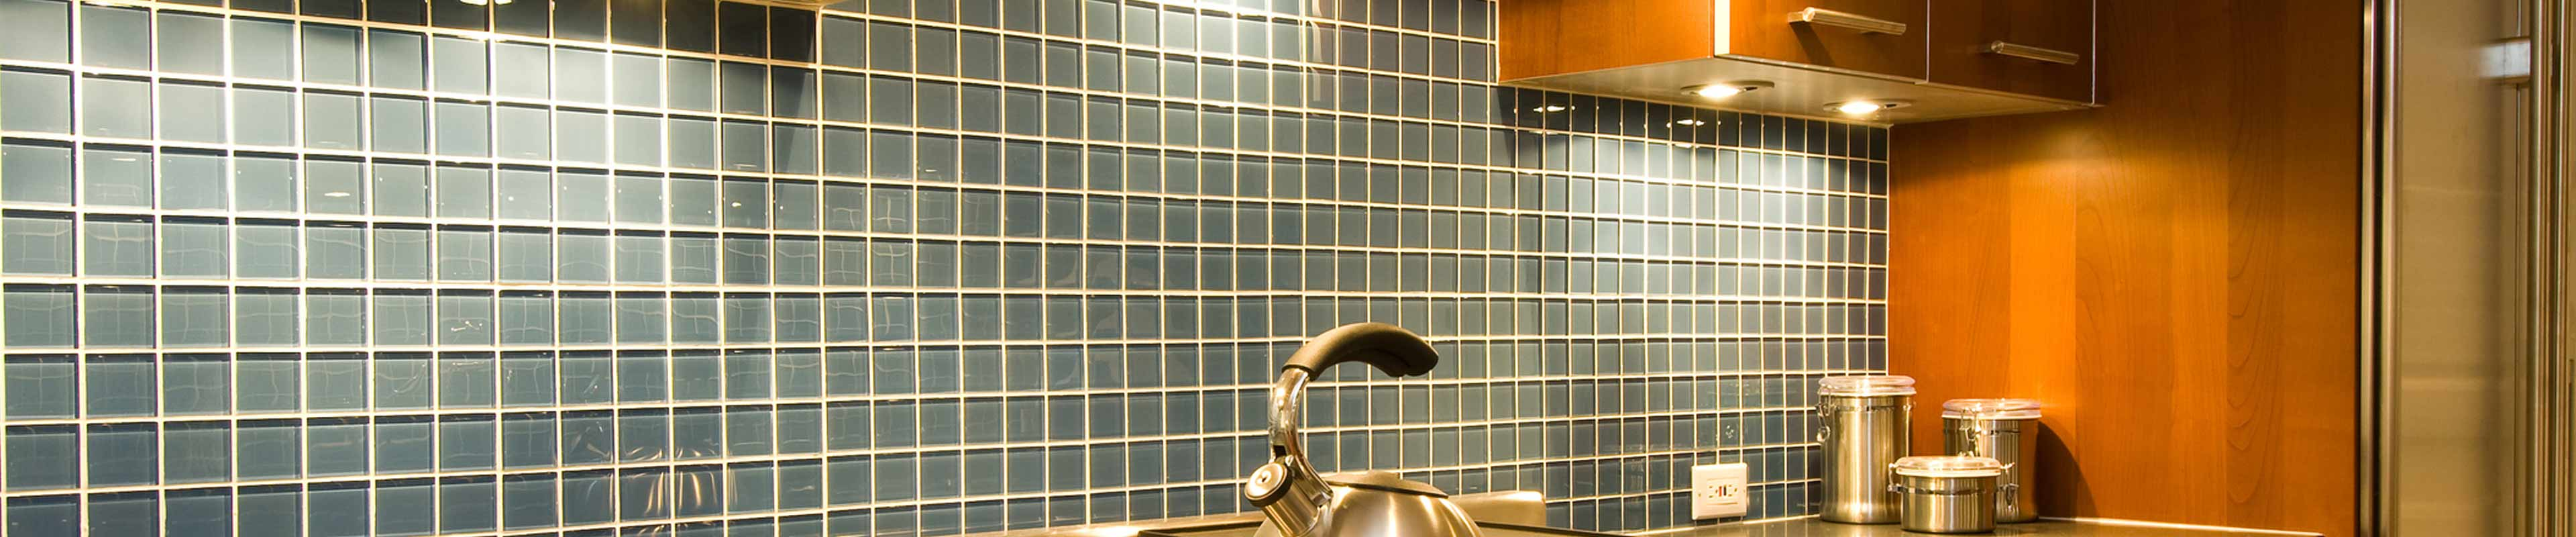 lakes tiles central coast tiles in a modern kitchen